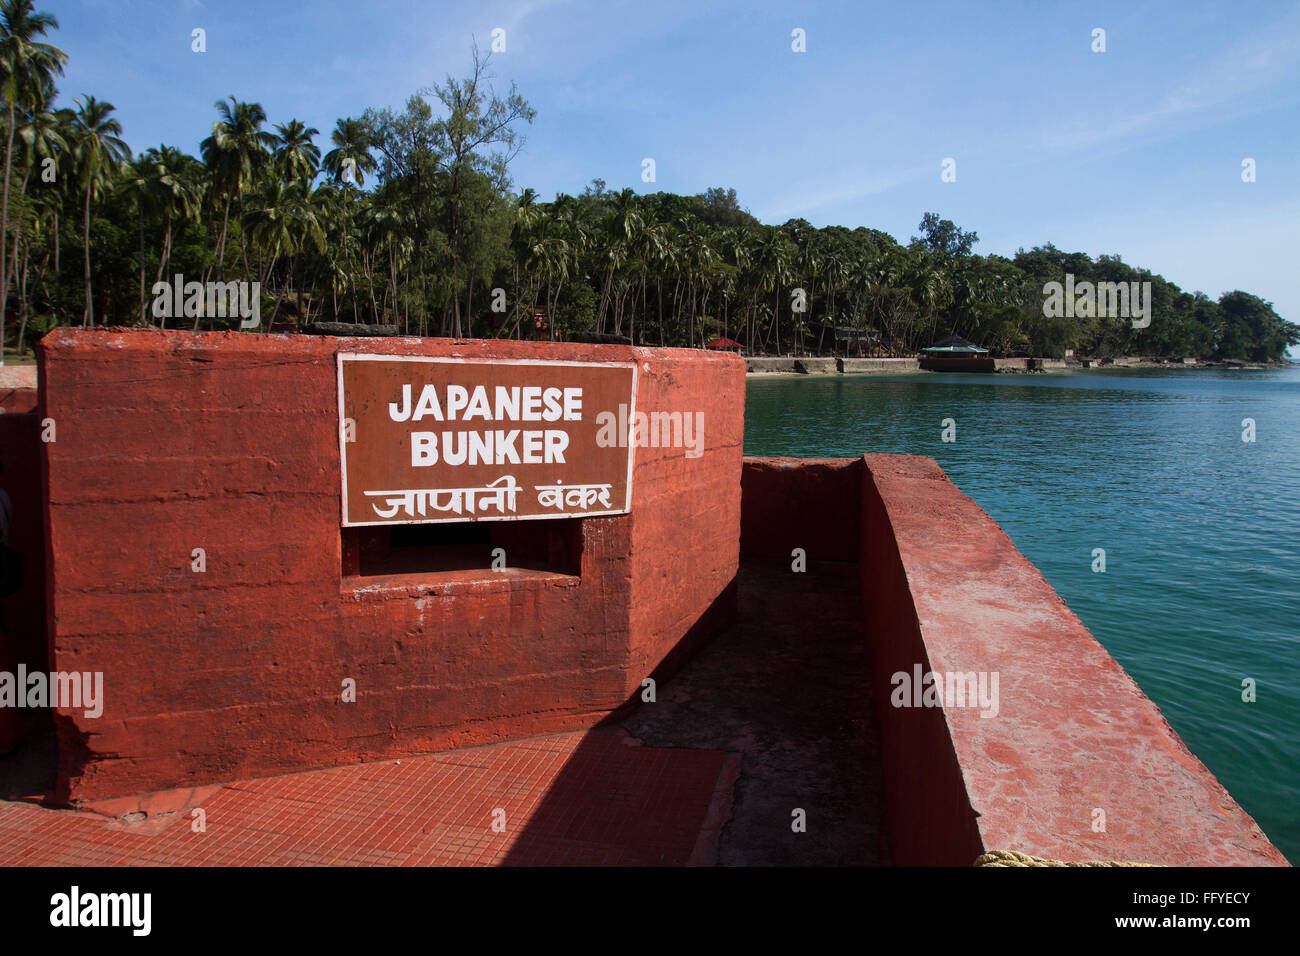 Japanese Bunker and sea scape Ross Island near Port blair Andaman islands India - Stock Image